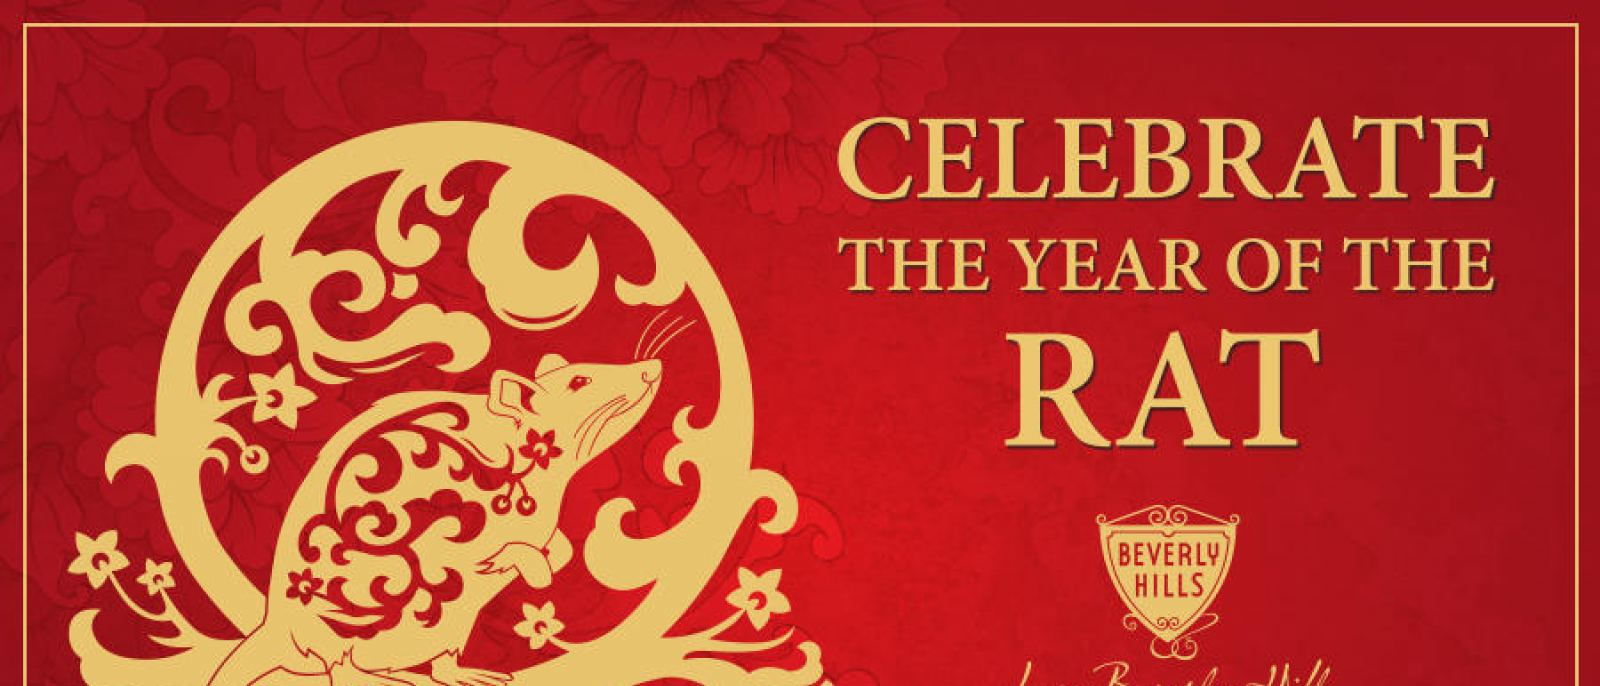 9th Annual Chinese New Year Celebration at the Saban Theatre in Beverly Hills